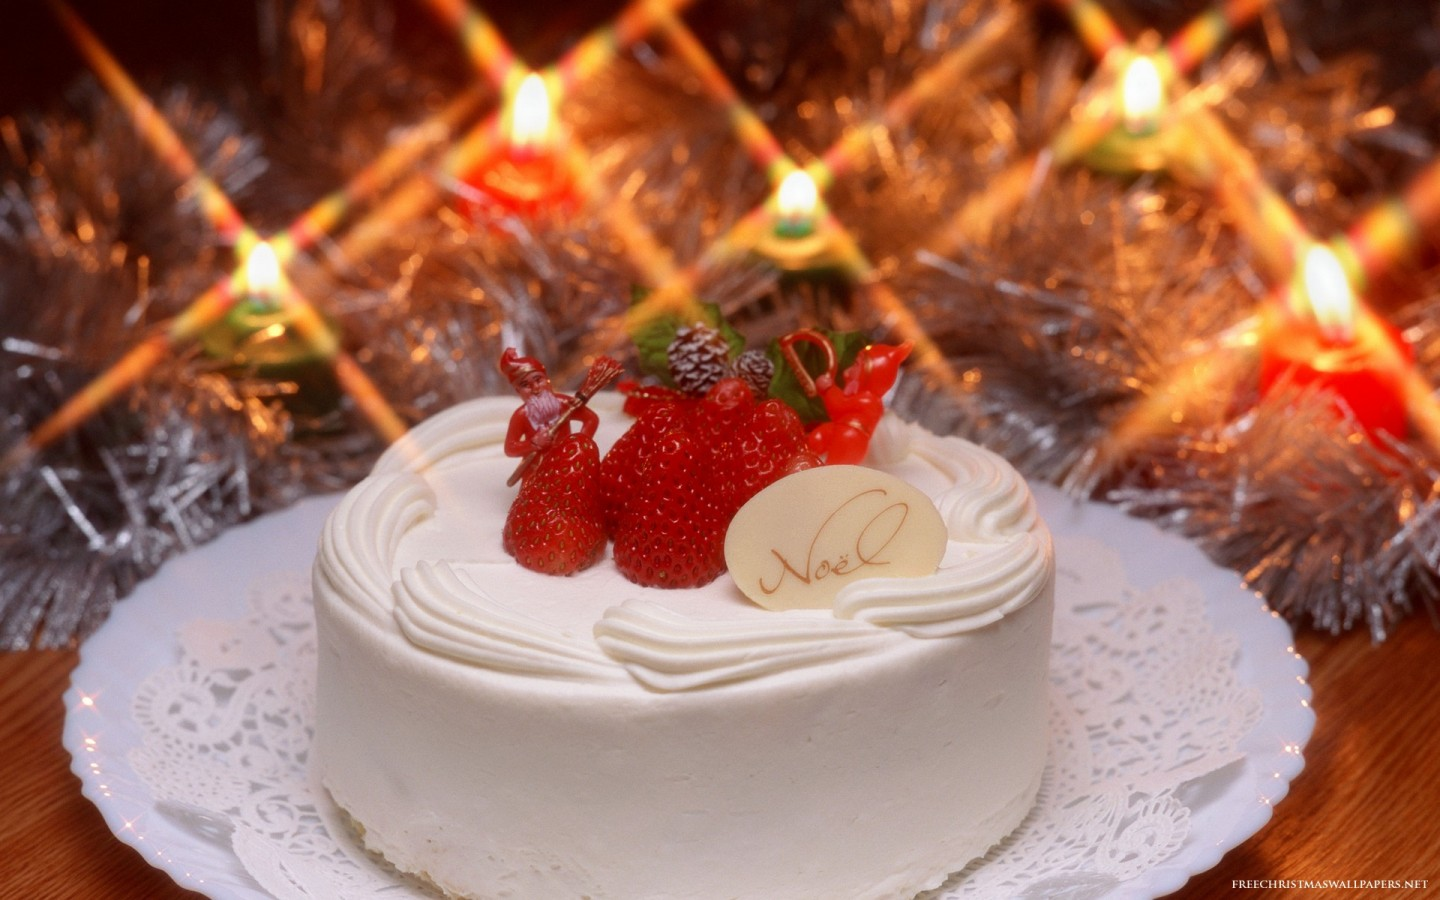 Free Download Christmas Cake Images : Christmas Cake 1440x900 - Wallpaper ...